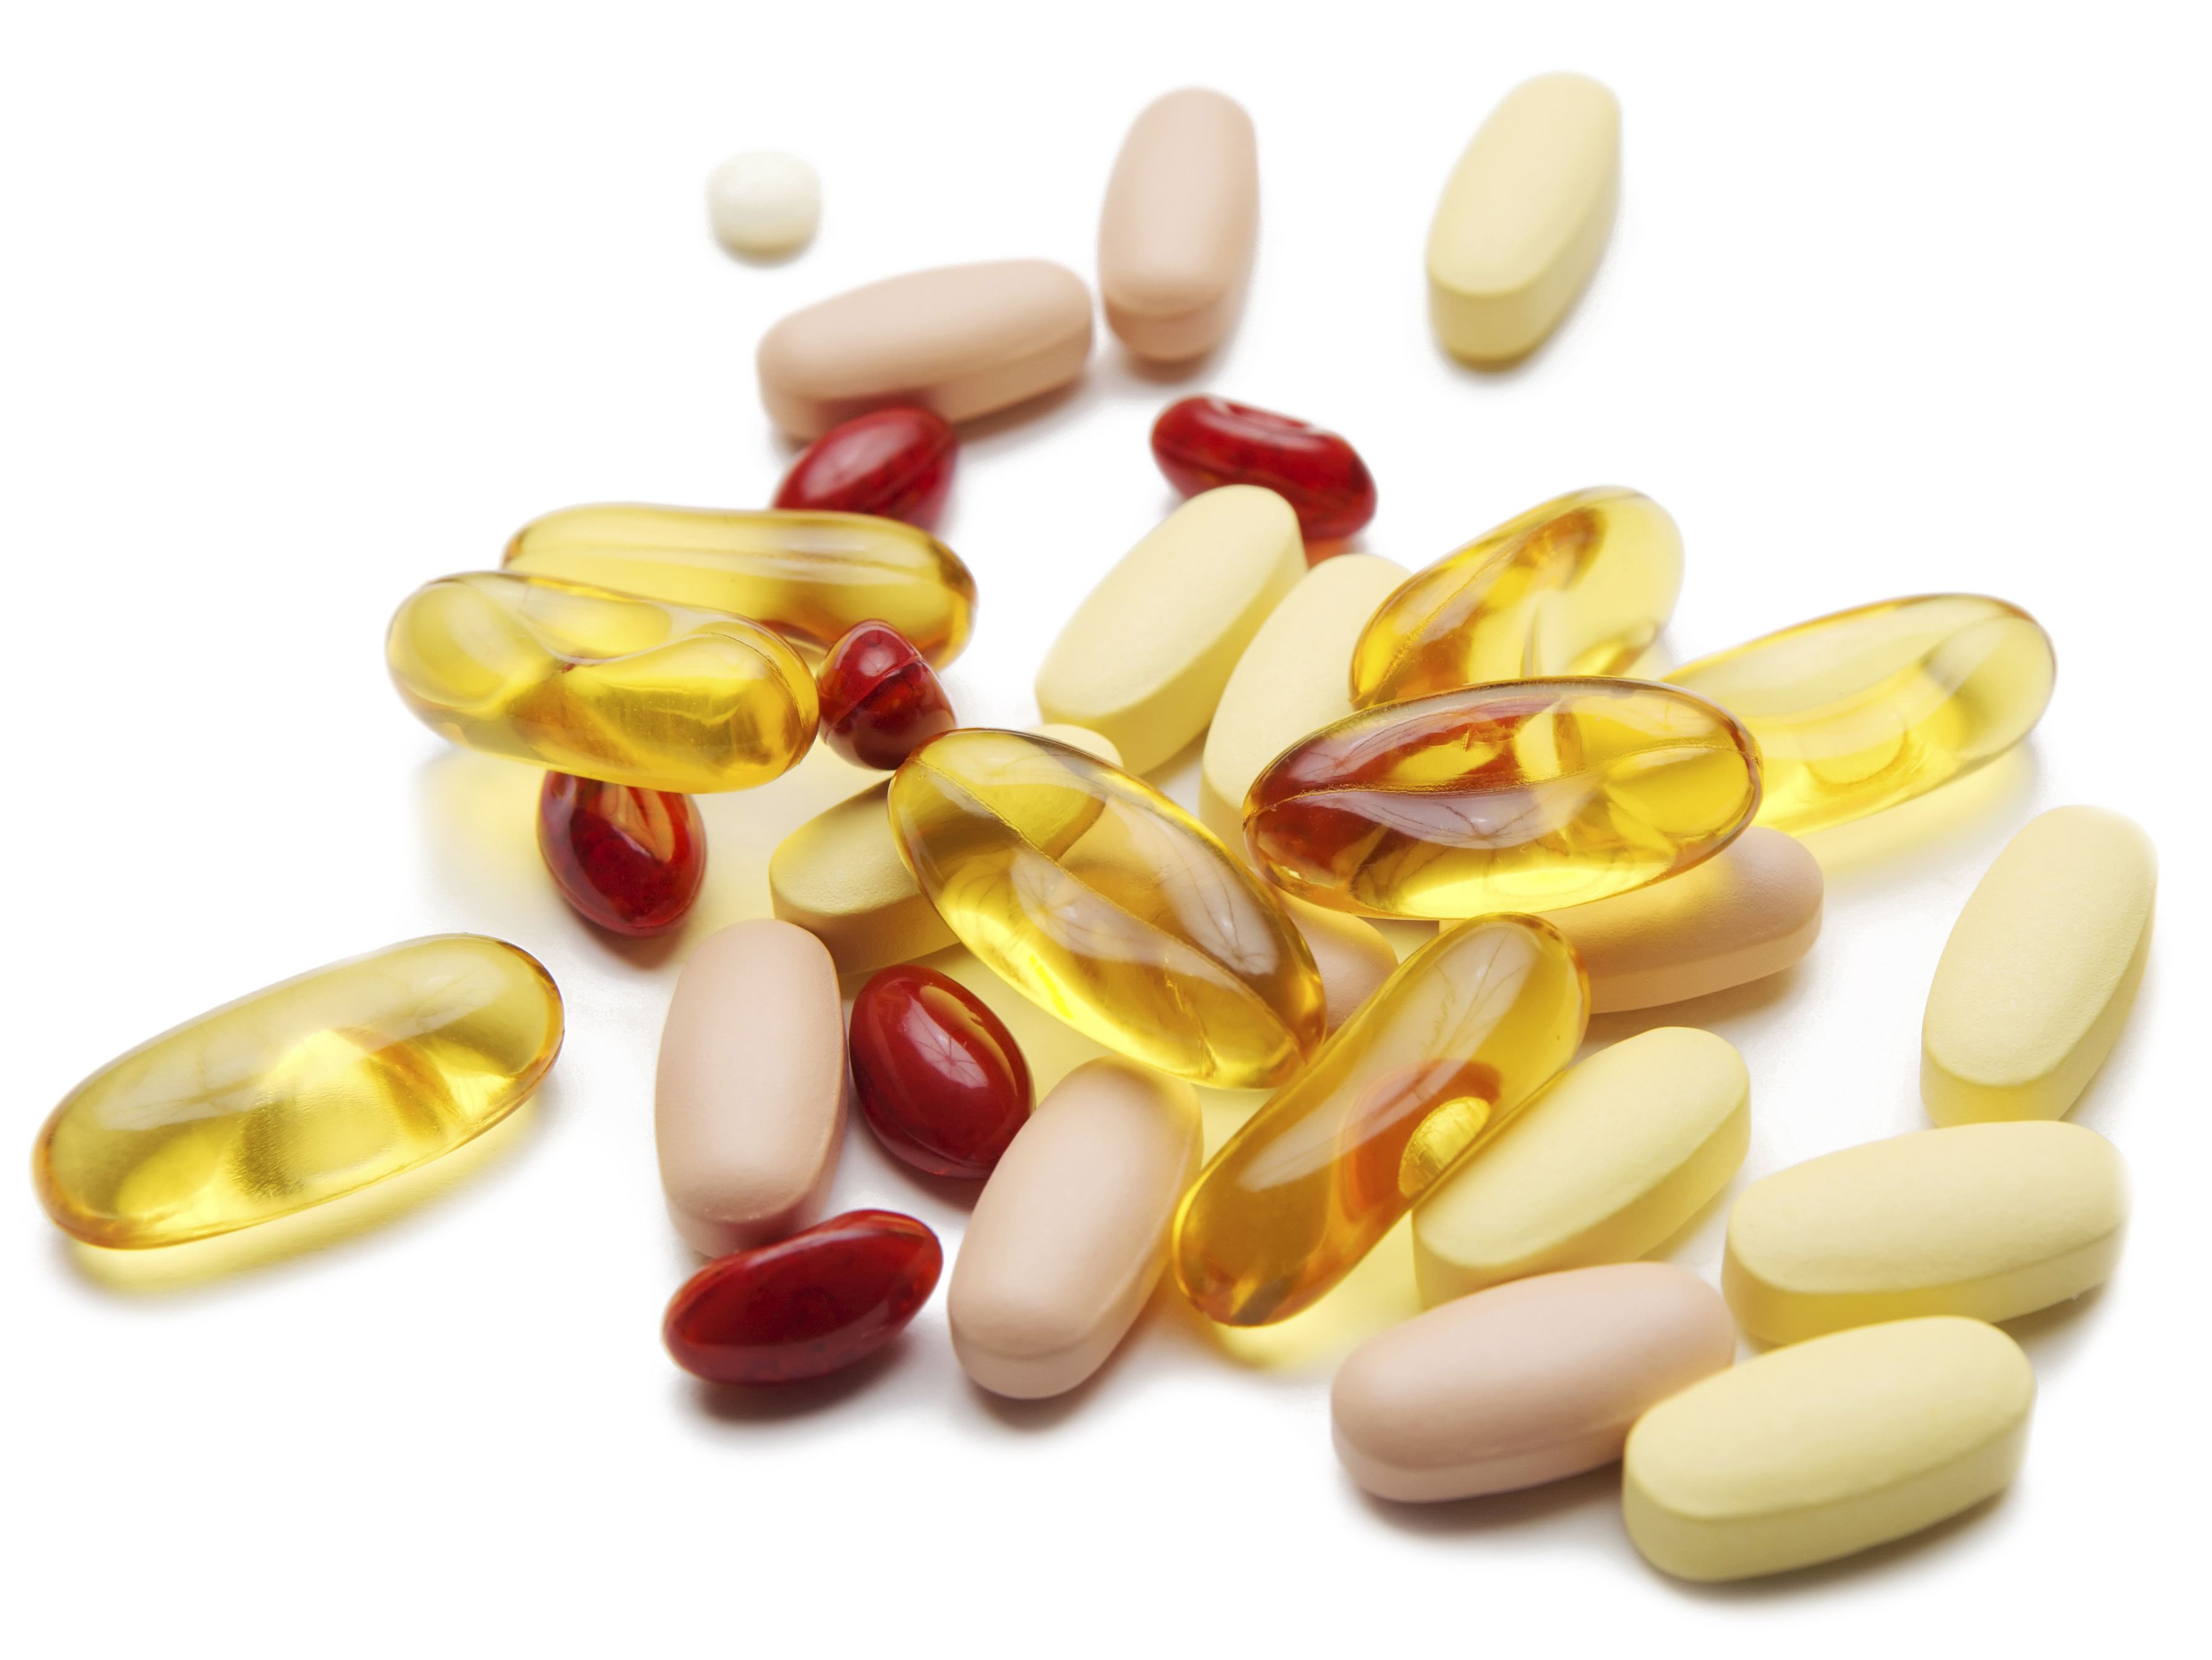 Supplements for Cellulite